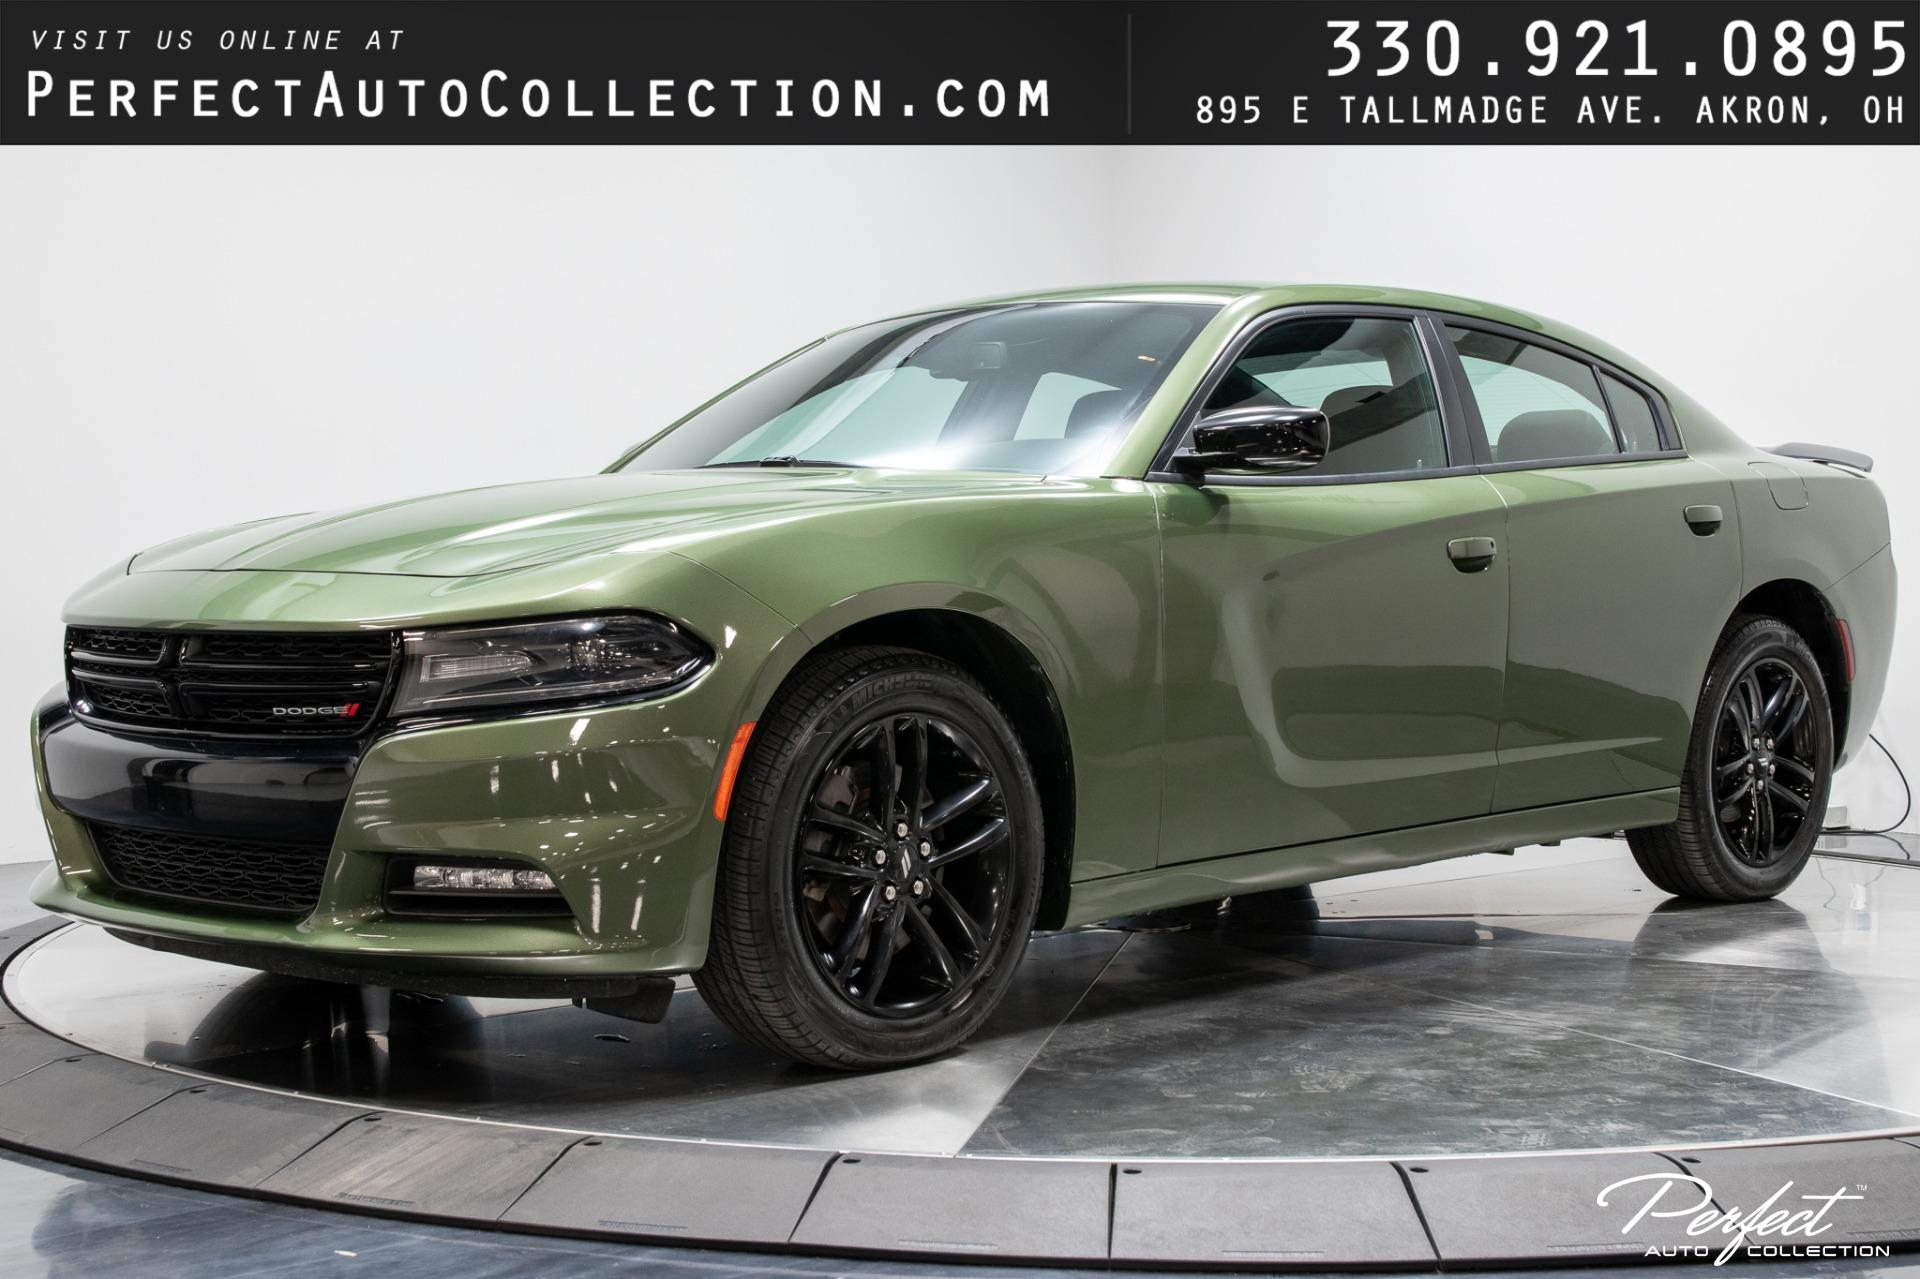 Used 2019 Dodge Charger SXT for sale $26,493 at Perfect Auto Collection in Akron OH 44310 1